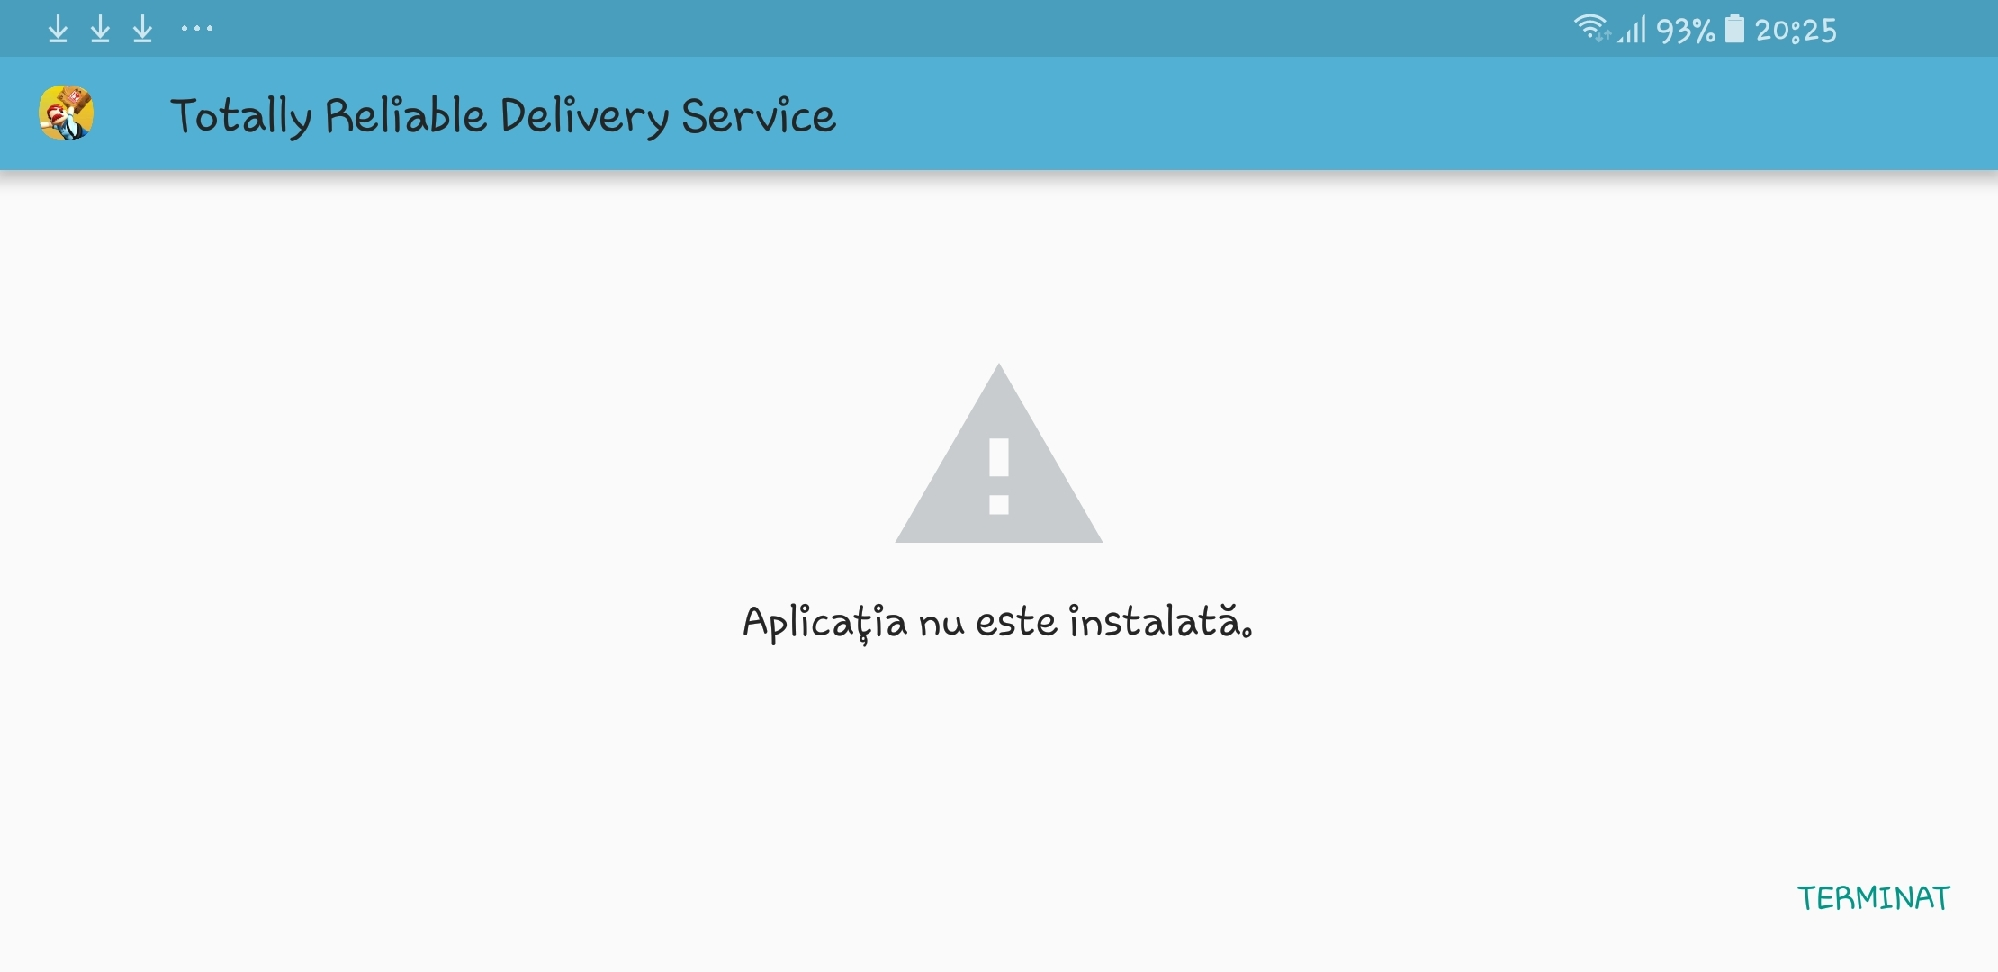 Totally Reliable Delivery Service Mod Apk Download Tinybuild Totally Reliable Delivery Service Mod Apk 1 3 4 Free For Android